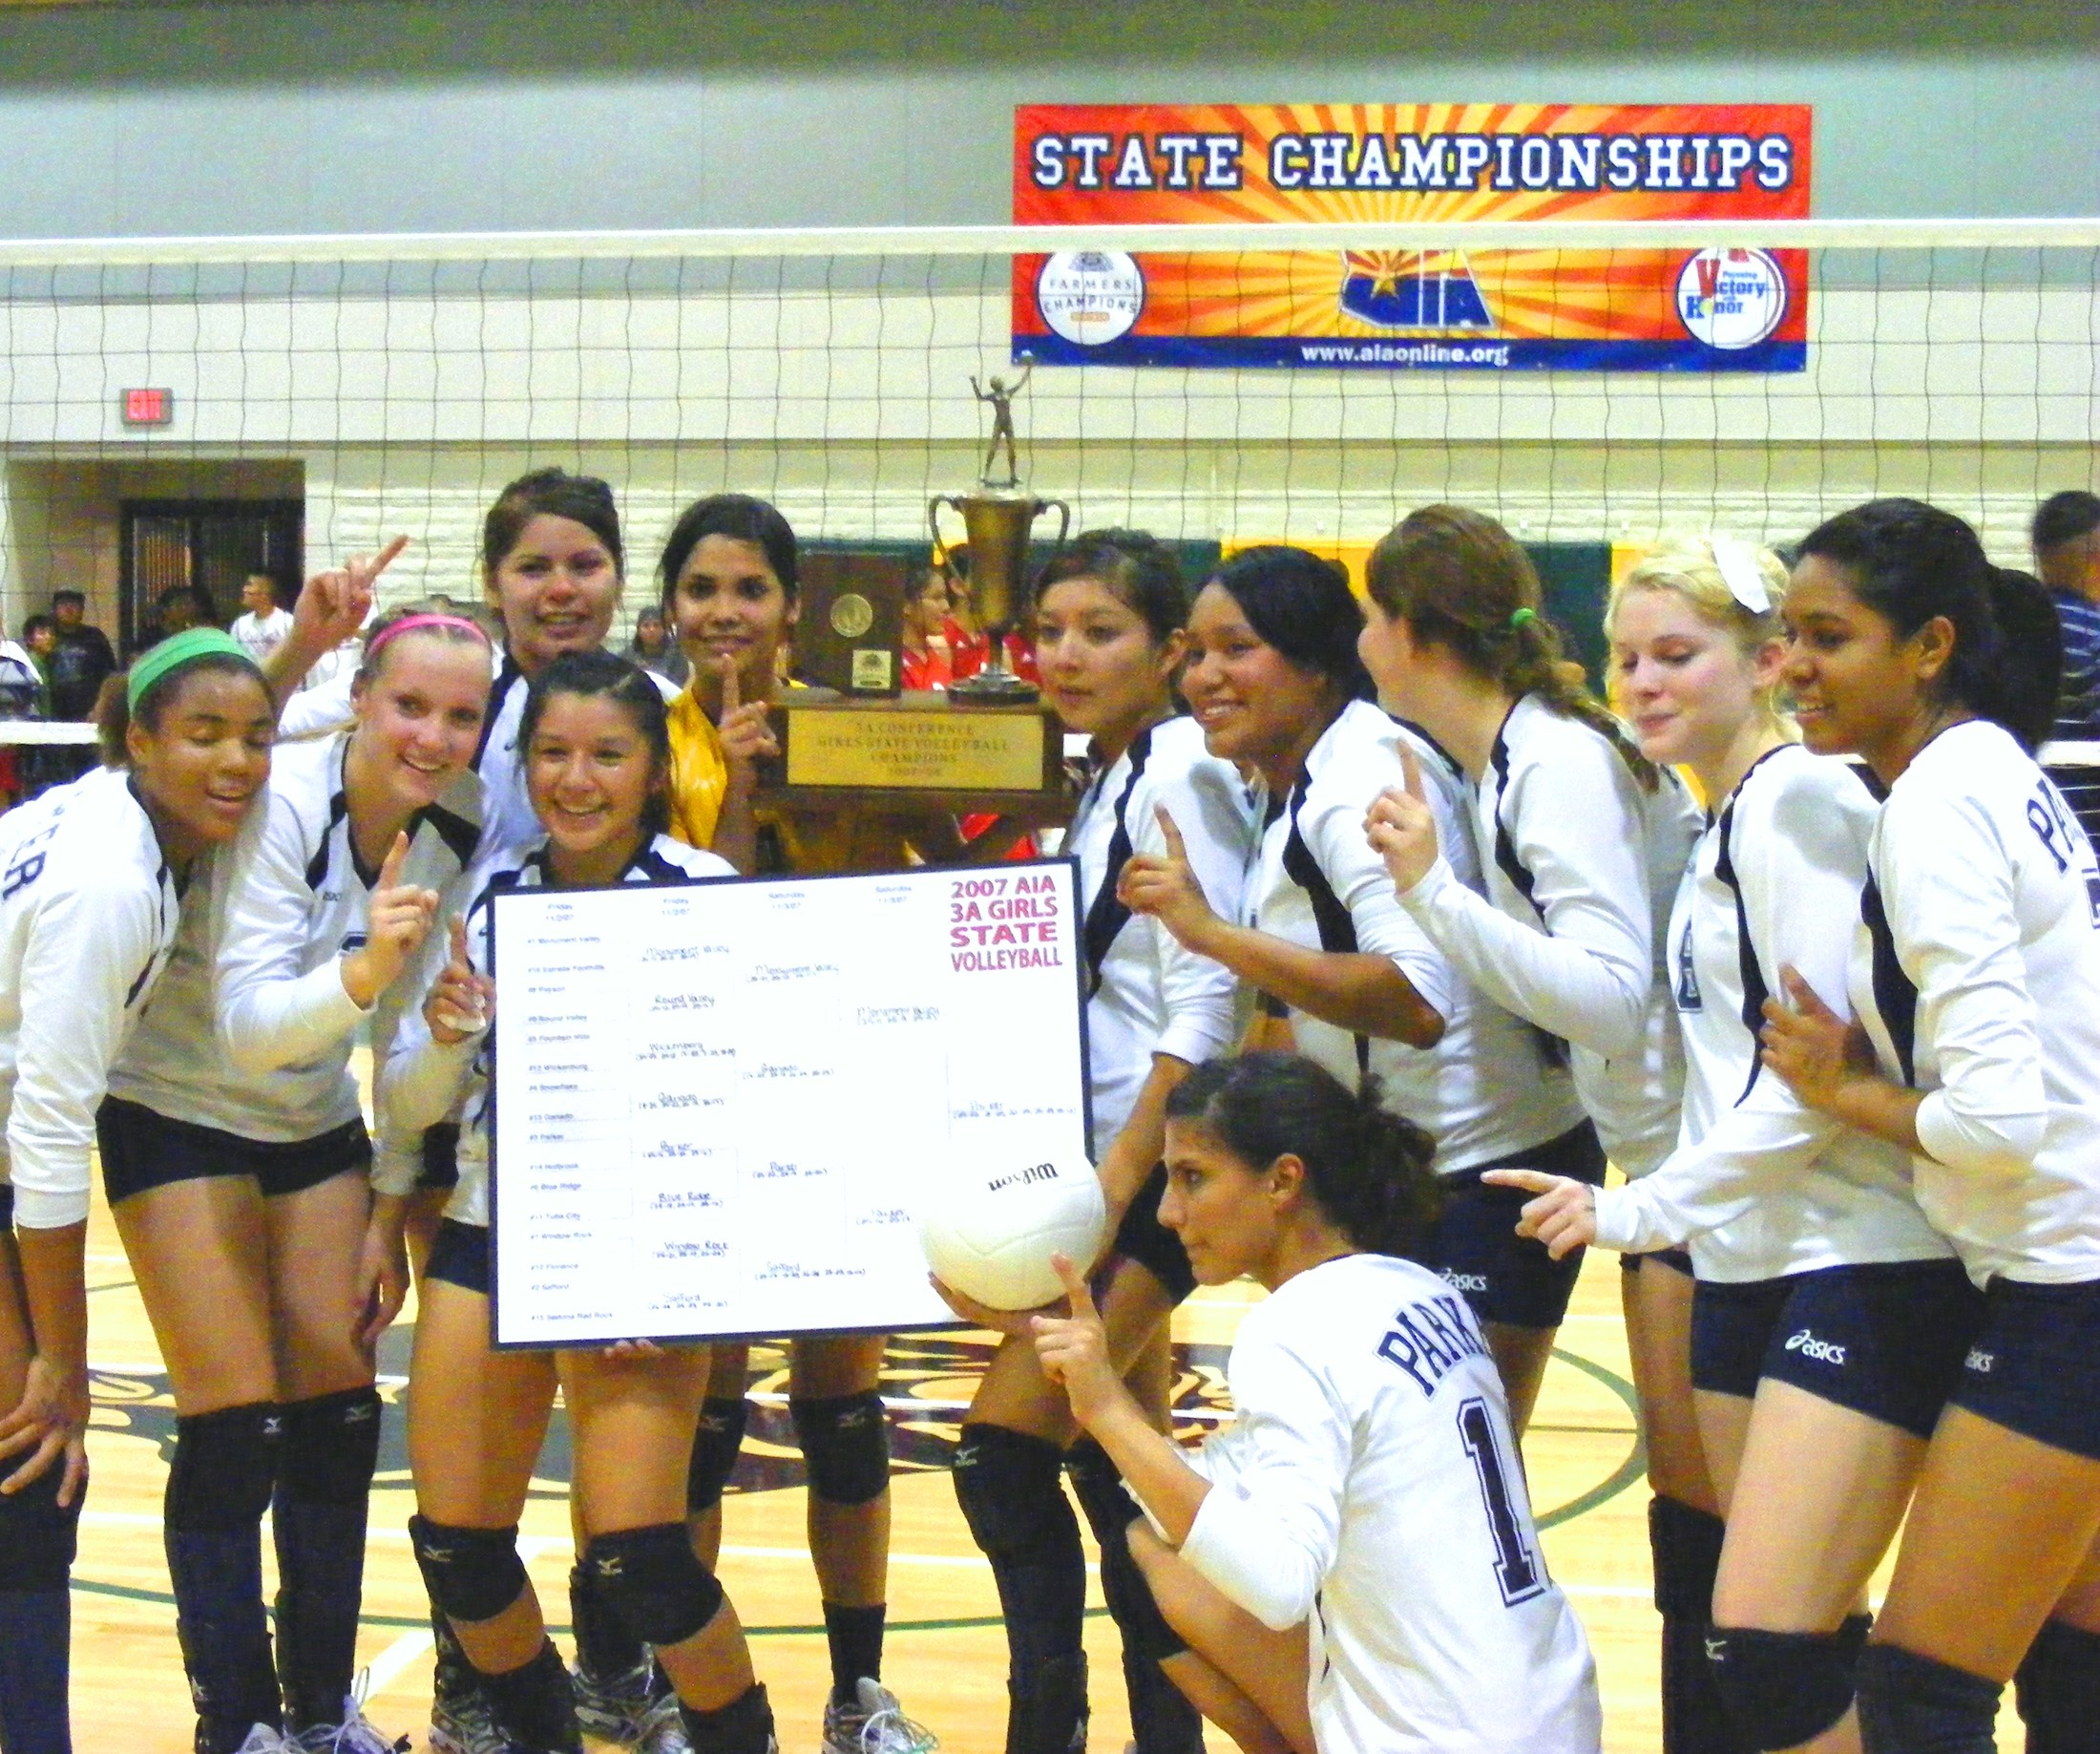 Volleyball girls photo of State Championship